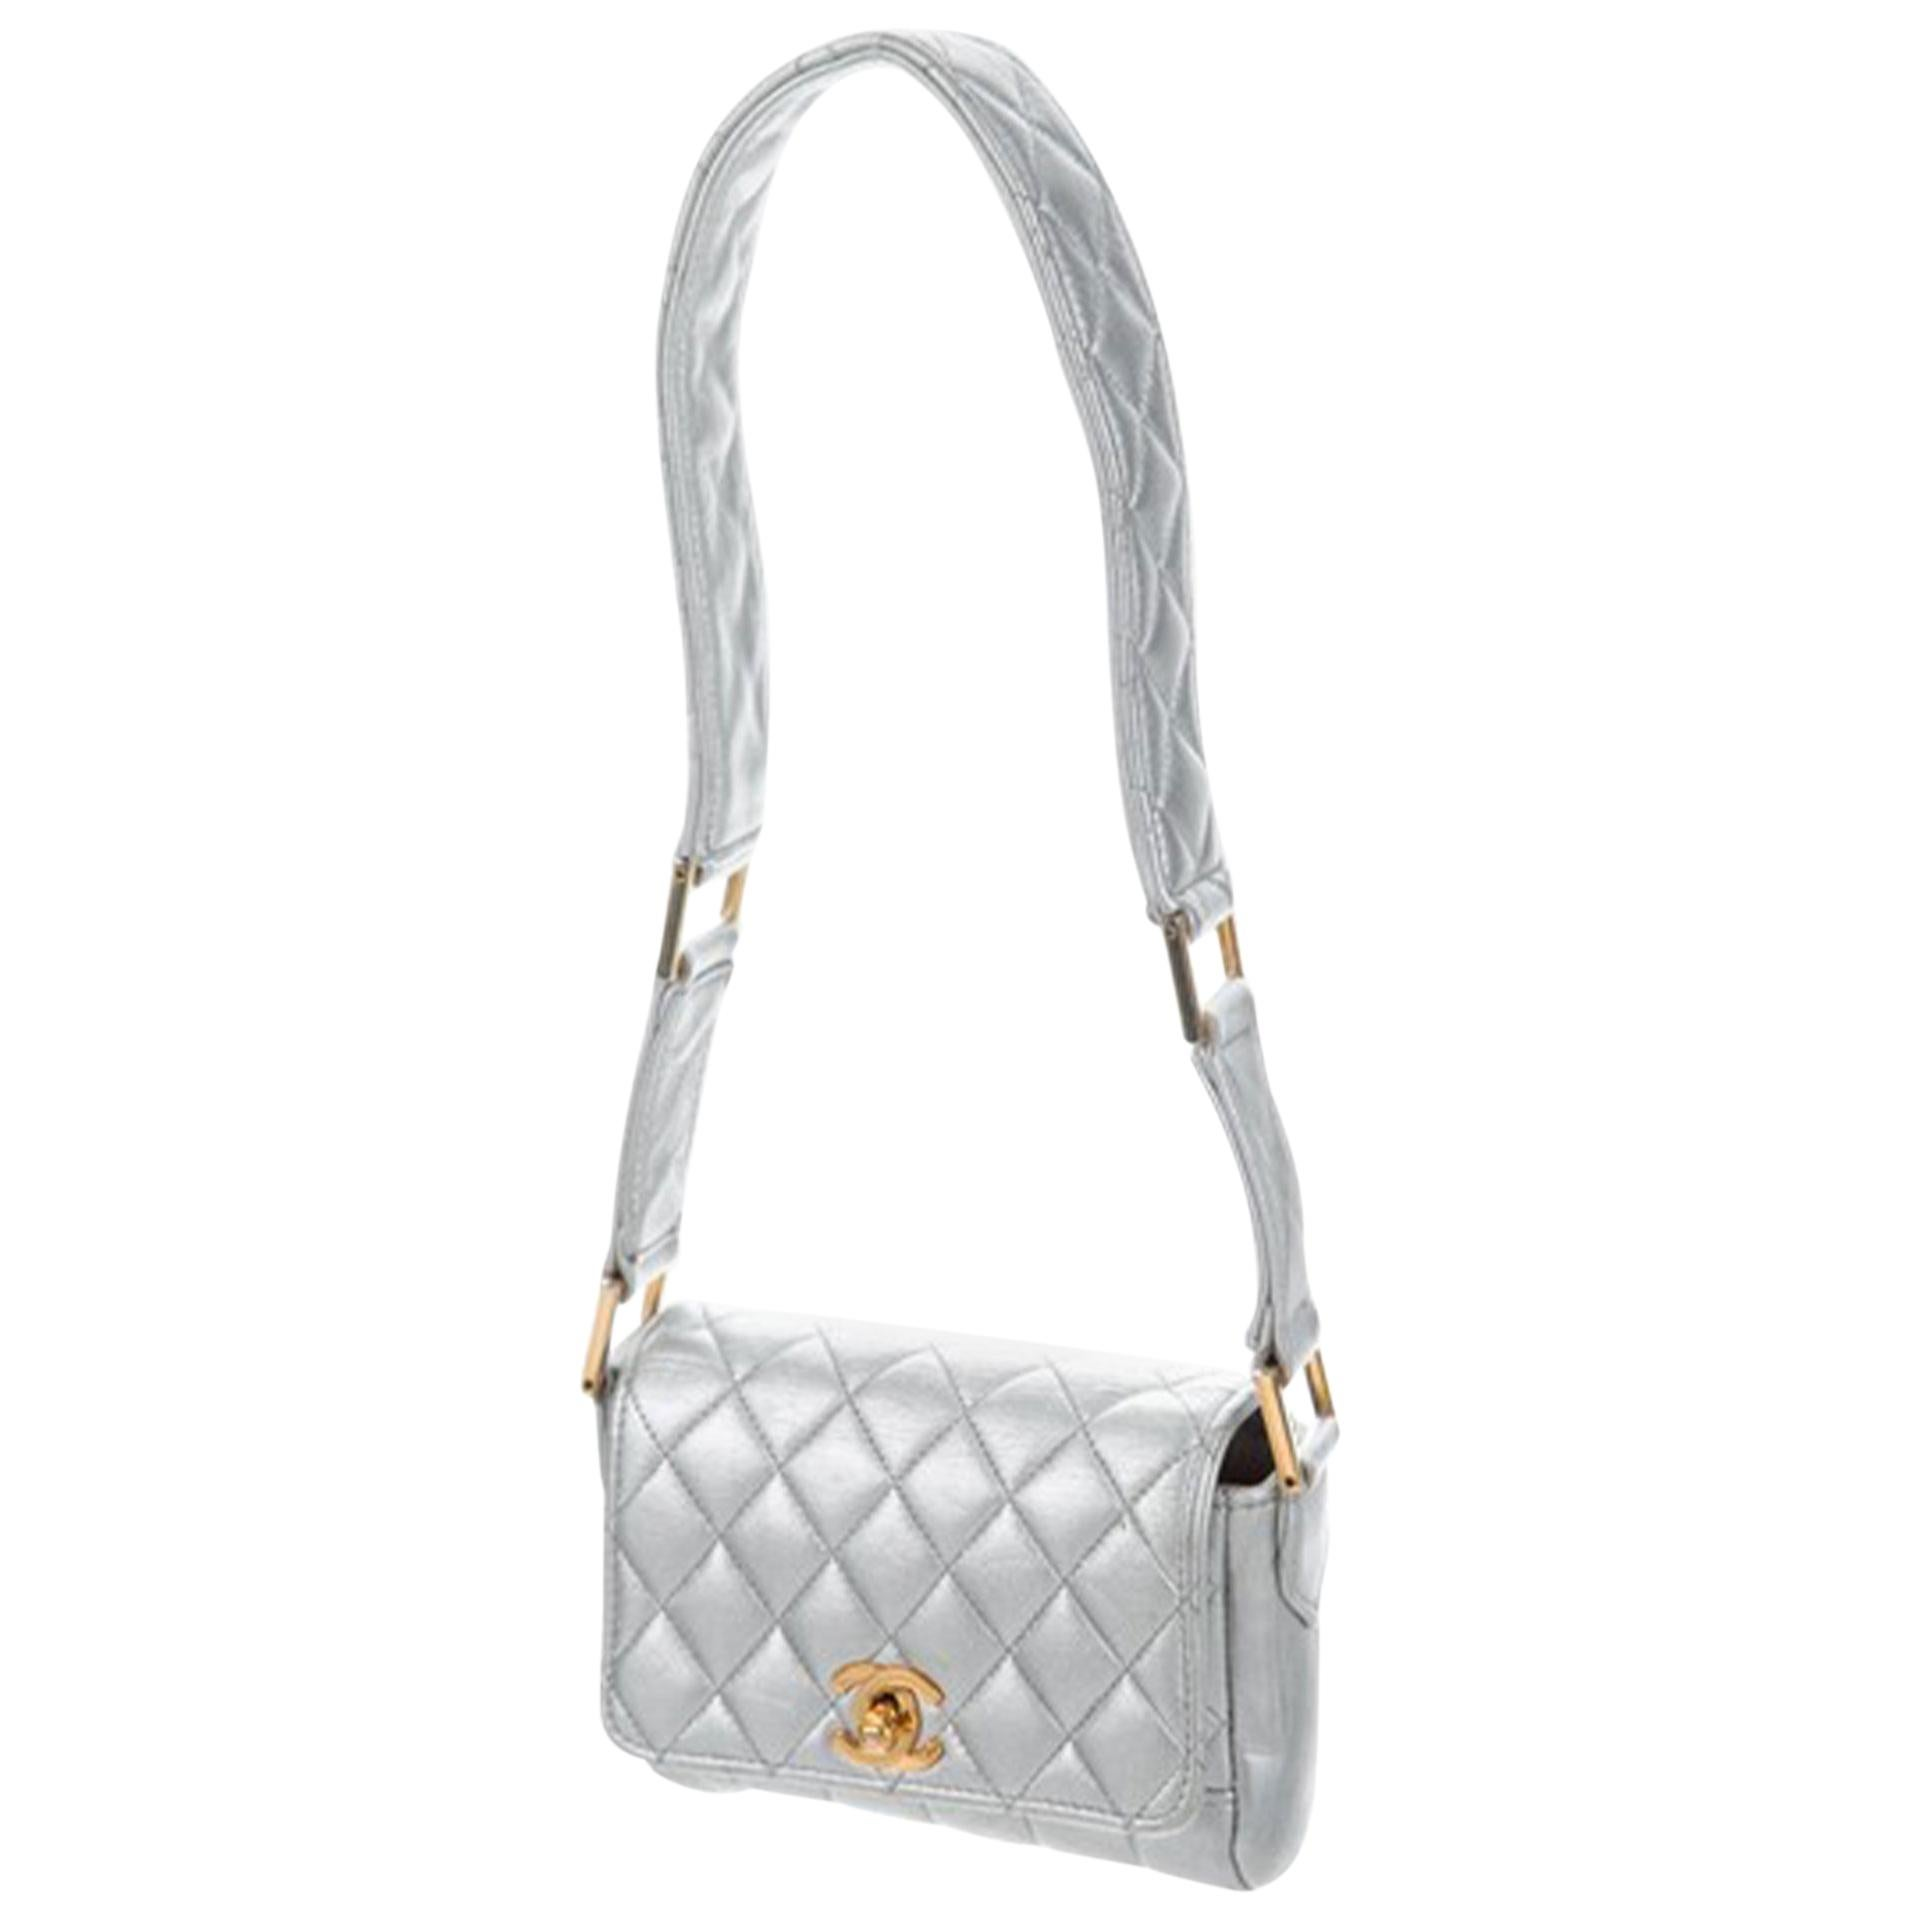 Chanel Classic Flap Rare Quilted Micro Mini Silver Metallic Lambskin Leather Bag